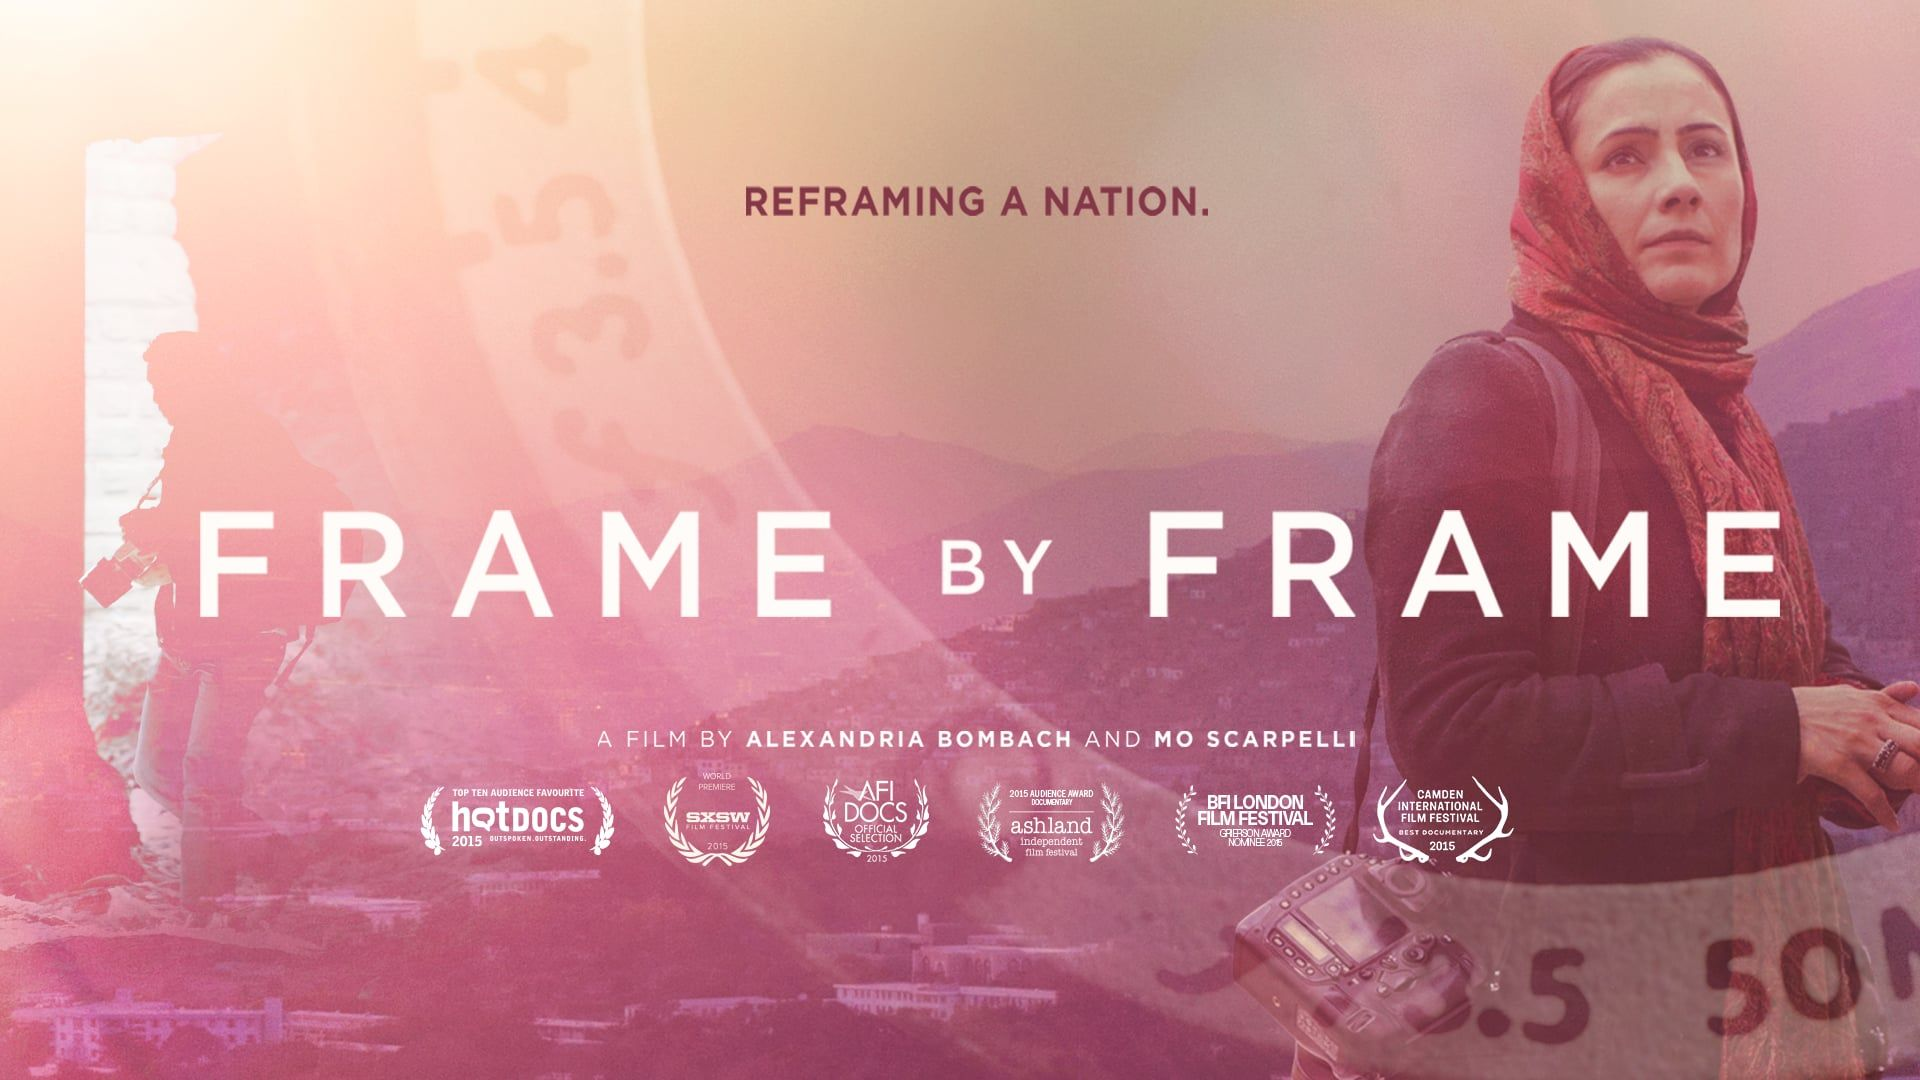 Frame By Frame Highly Recommend This Film It Brings A Renewed